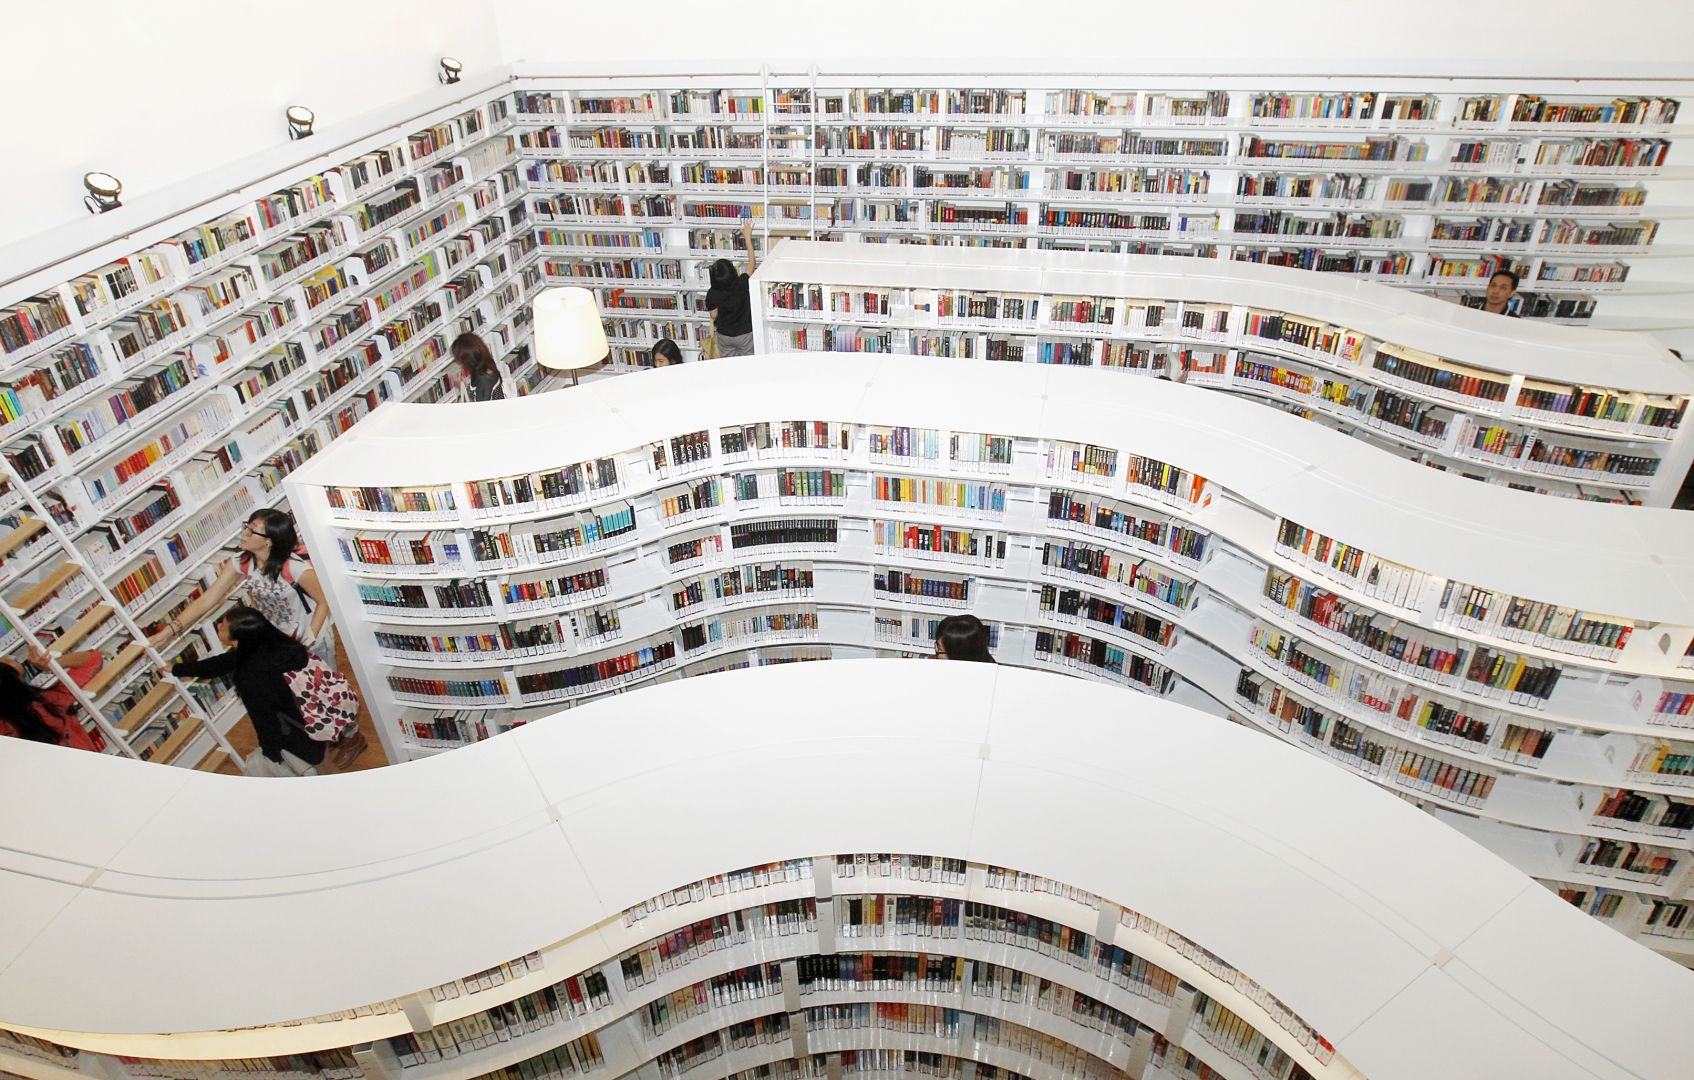 32.-Orchard-library.jpg